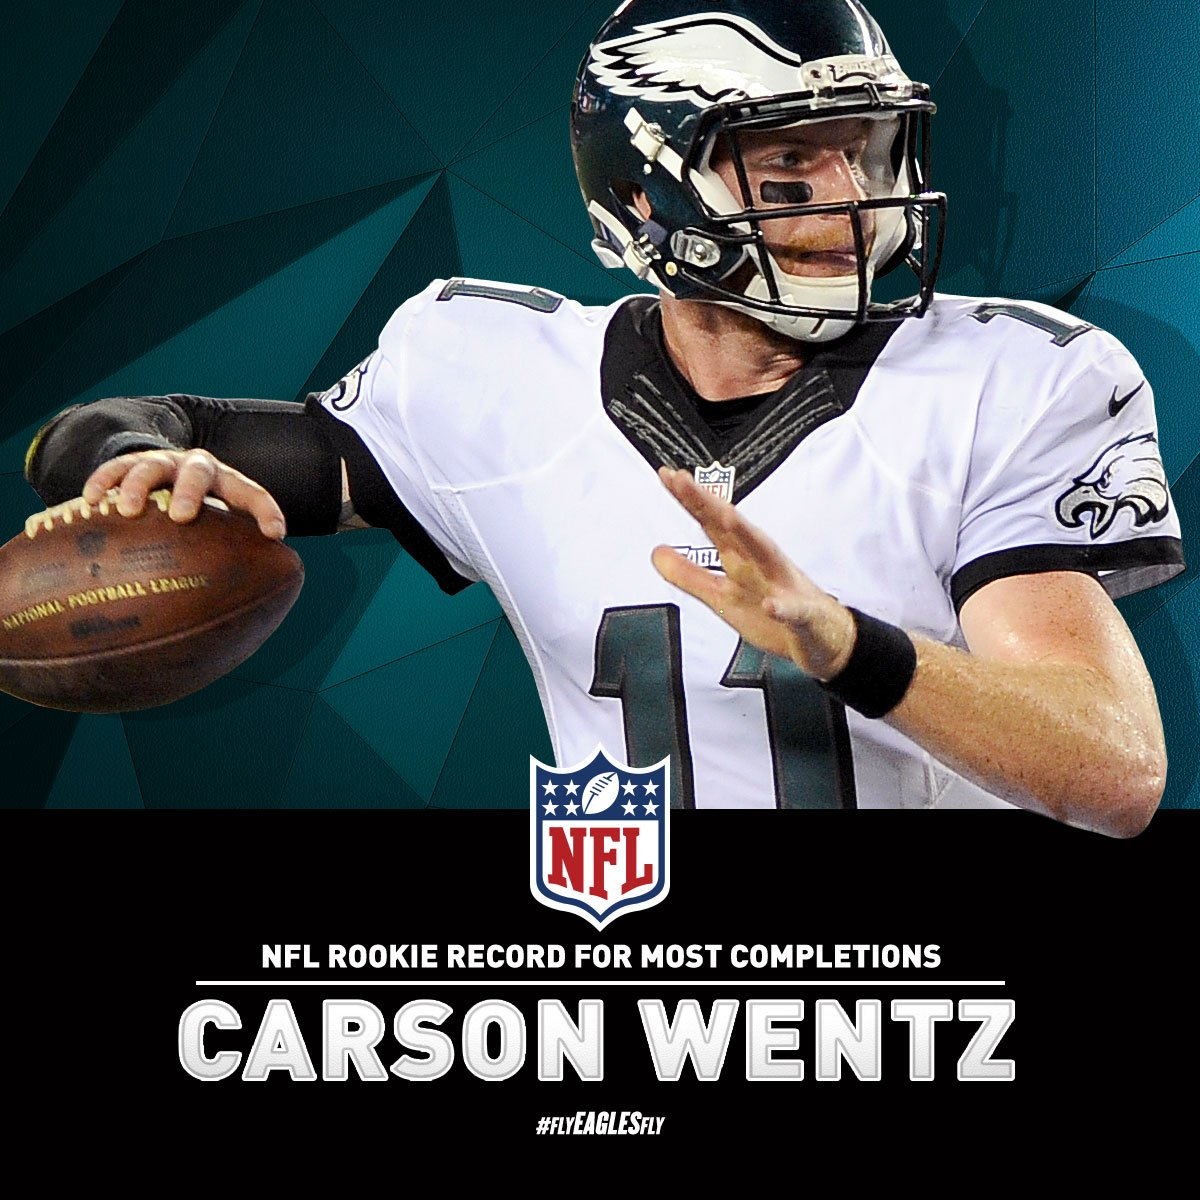 Another rookie milestone for @cj_wentz.  Congrats, Carson! #FlyEaglesFly https://t.co/PV22rGXcLy